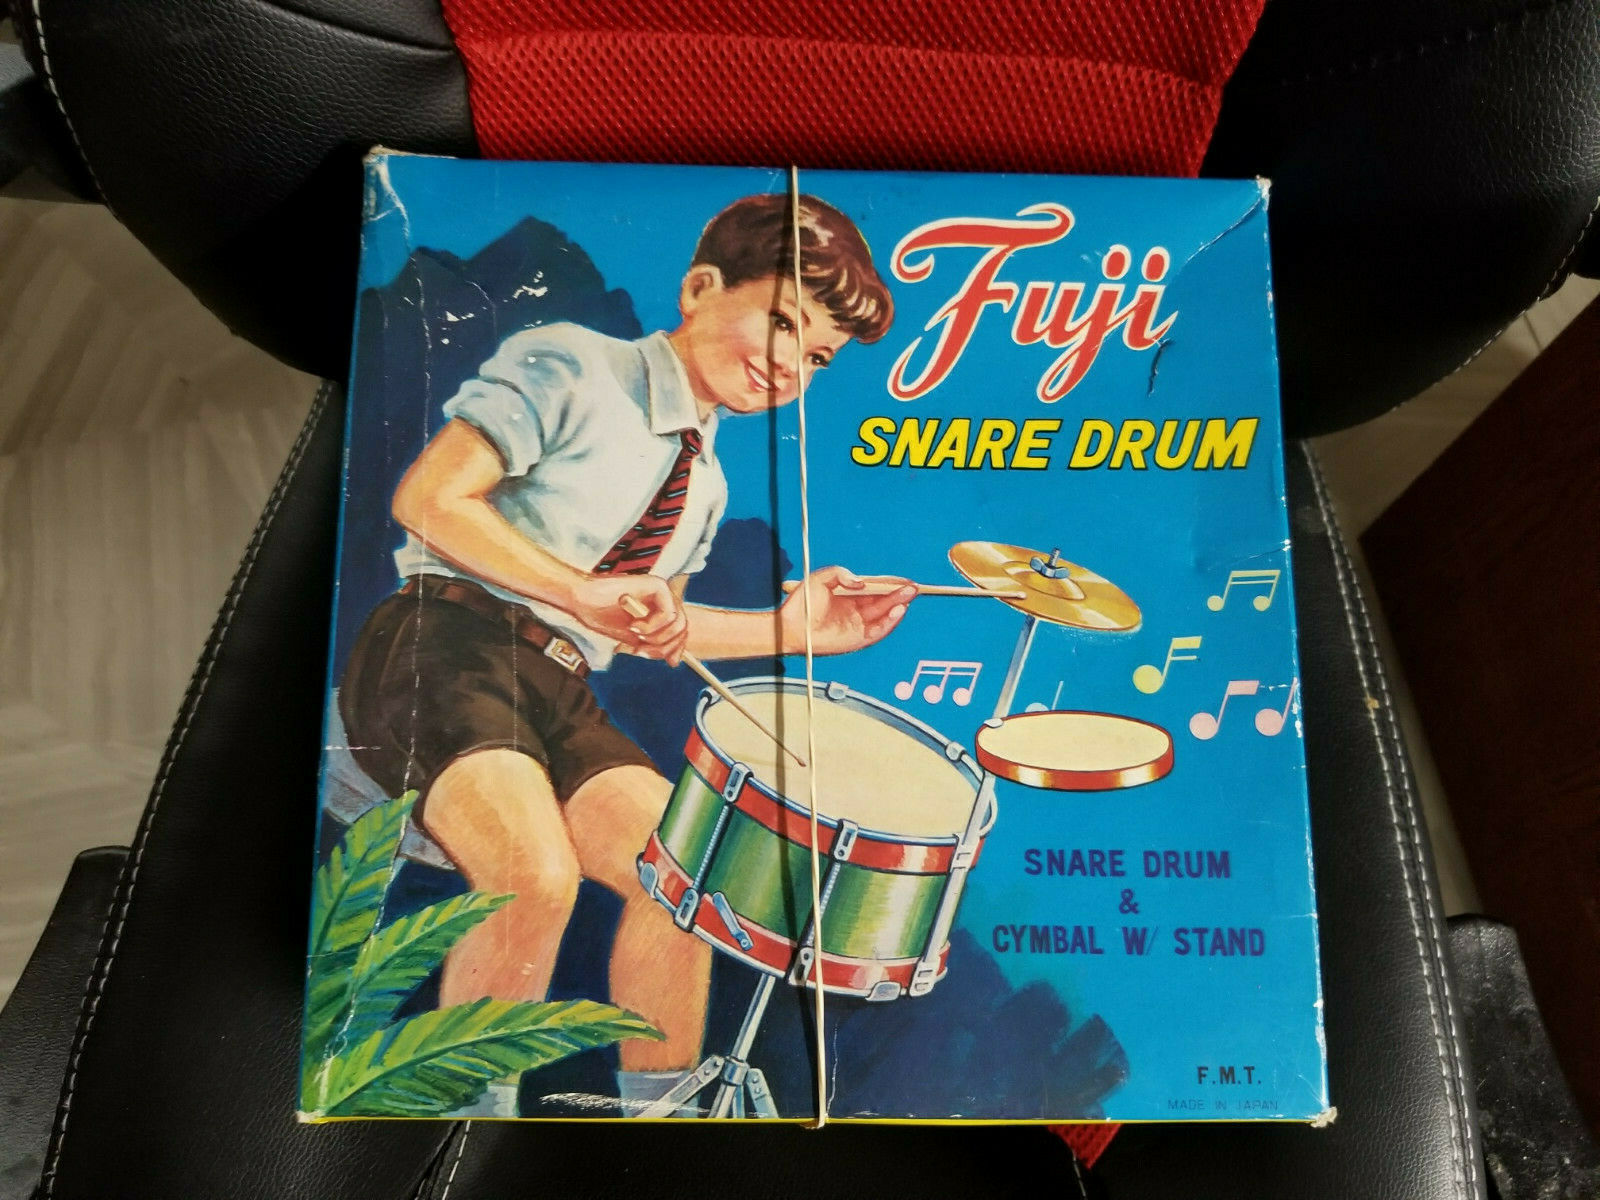 FUJI SNARE DRUM IN ORIGINAL BOX COMPLETE NEAR MINT RARE FIND